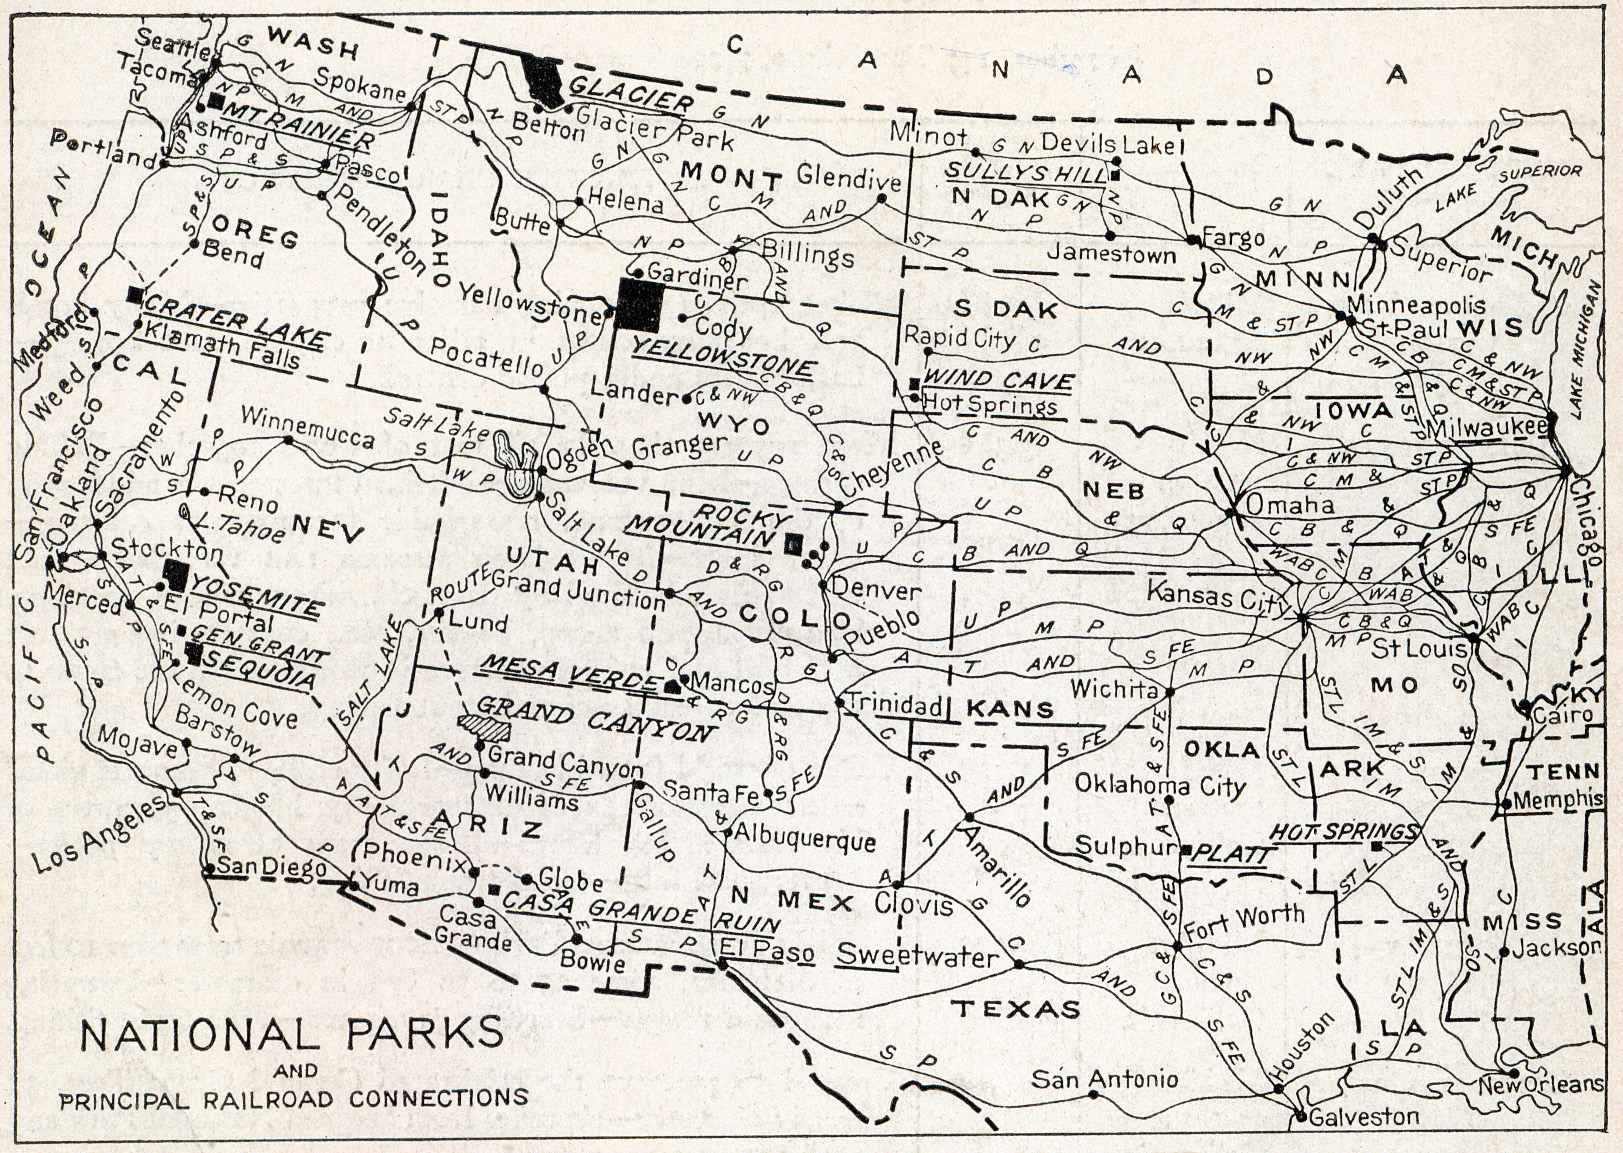 Natlparks_and_RRs_1916.jpg